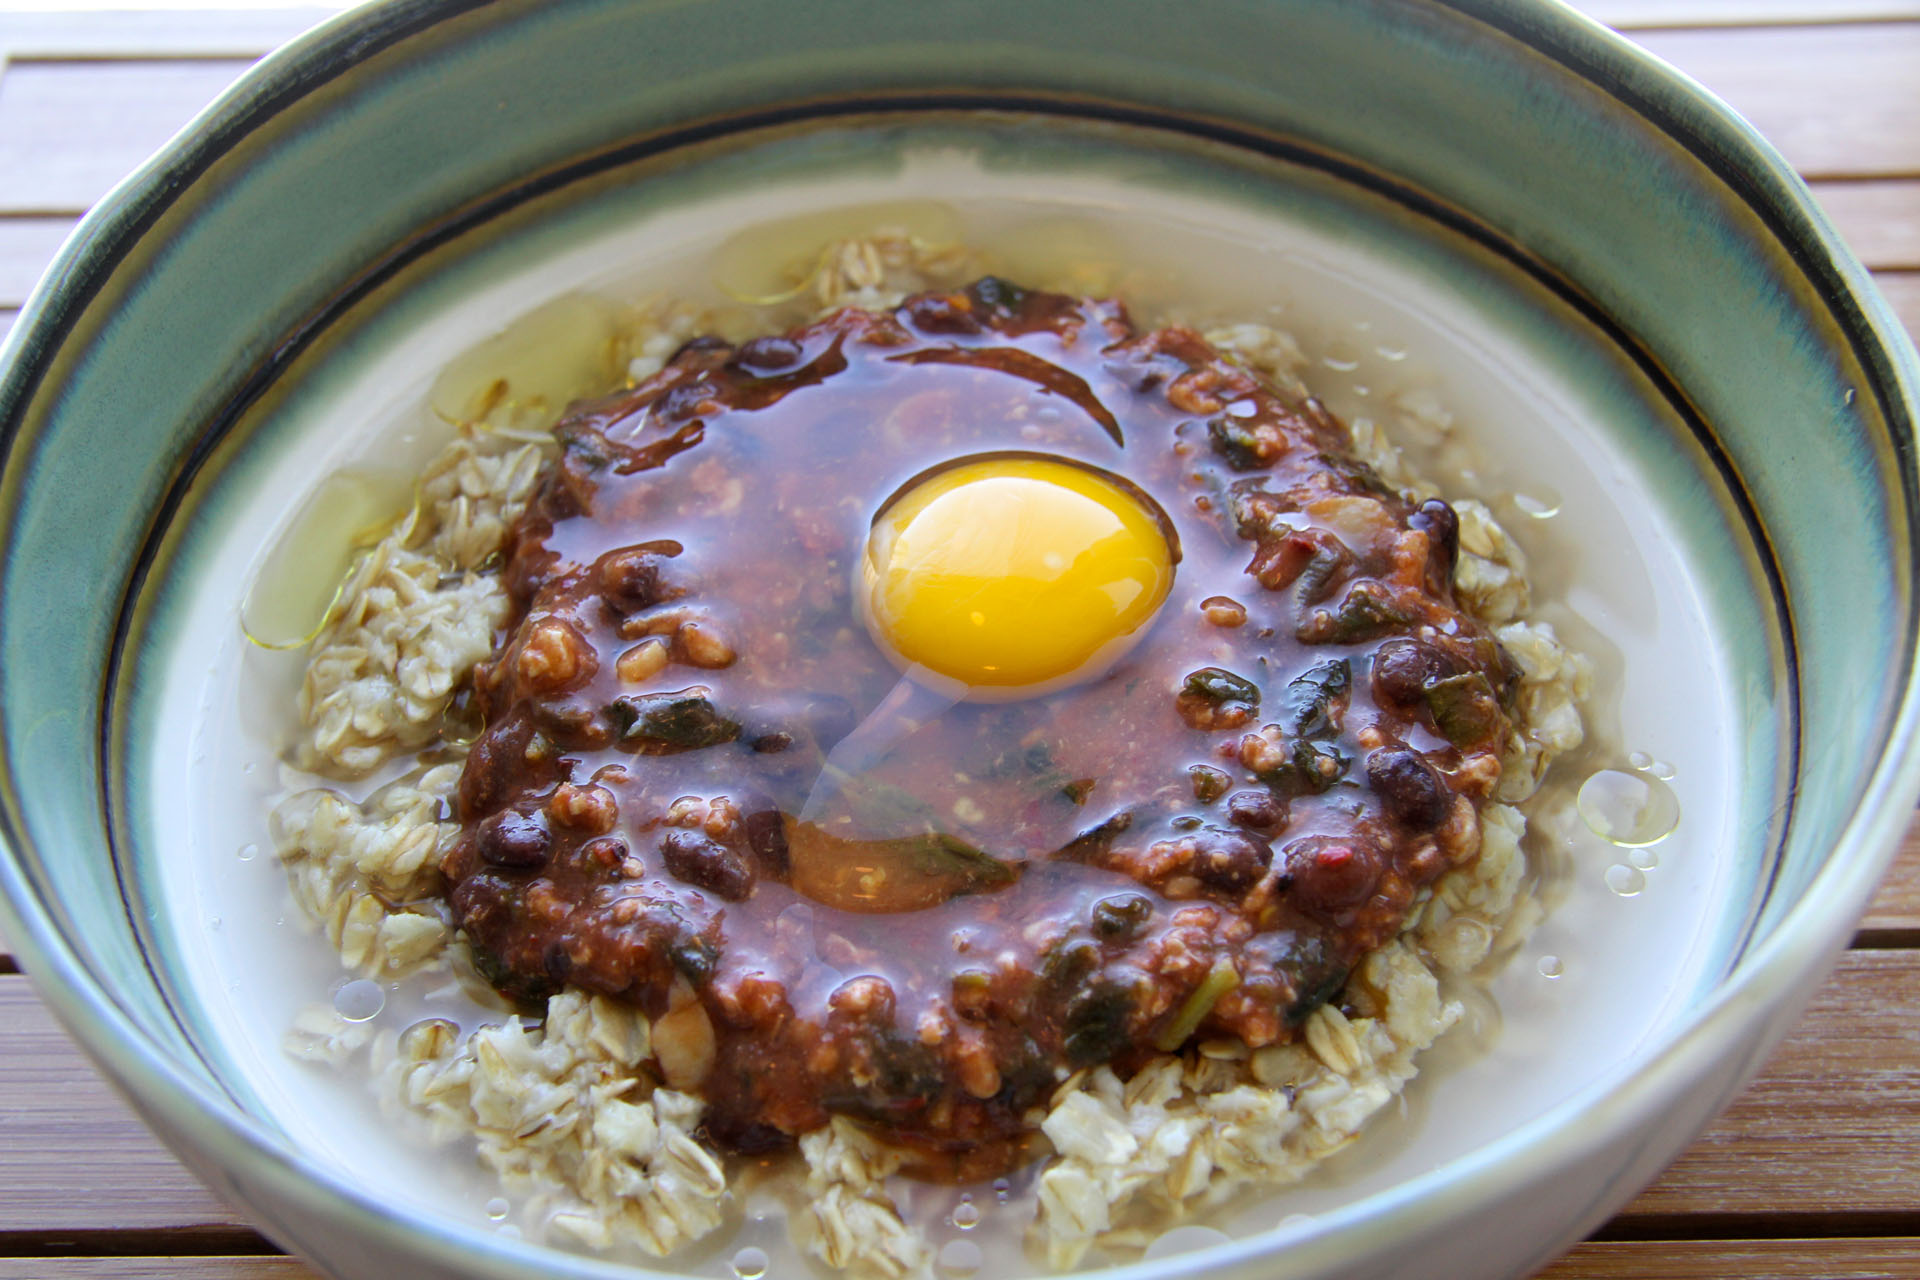 Blackbean Turkey Stew over Oatmeal - Fangalicious